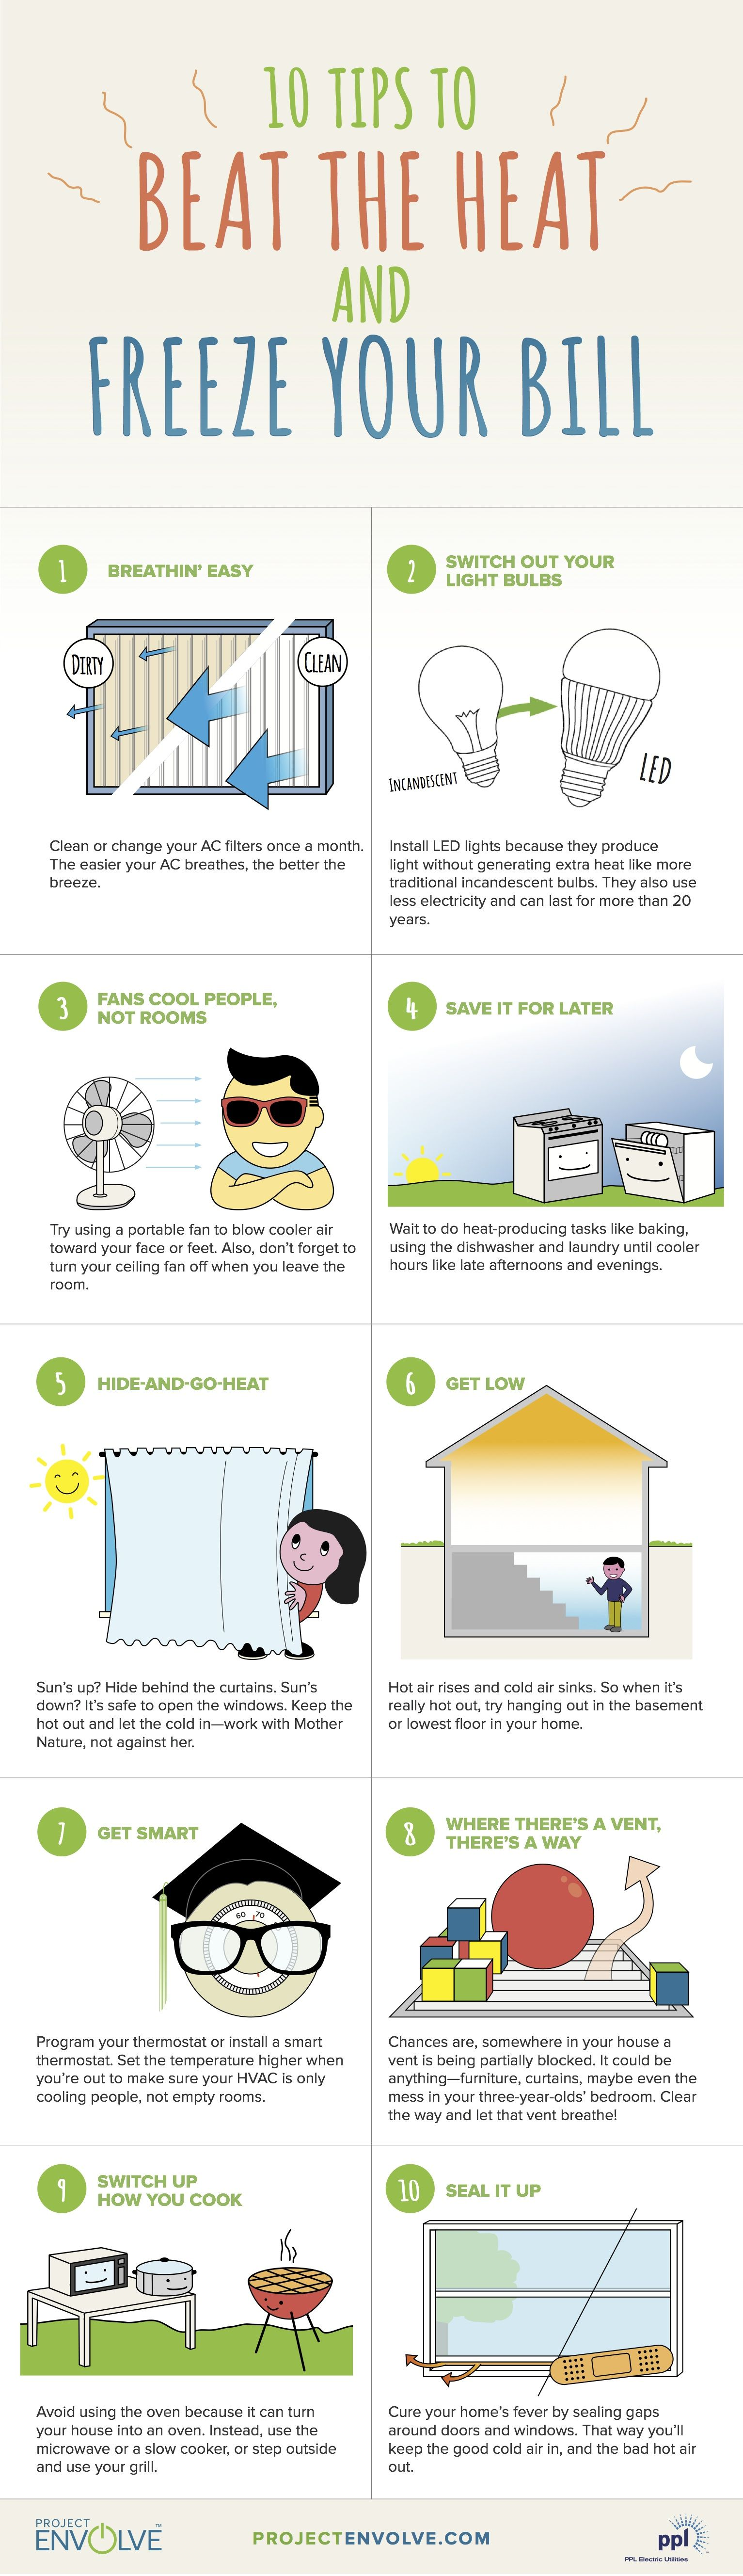 Easy Ways To Beat The Heat And Save Energy Plus A Free